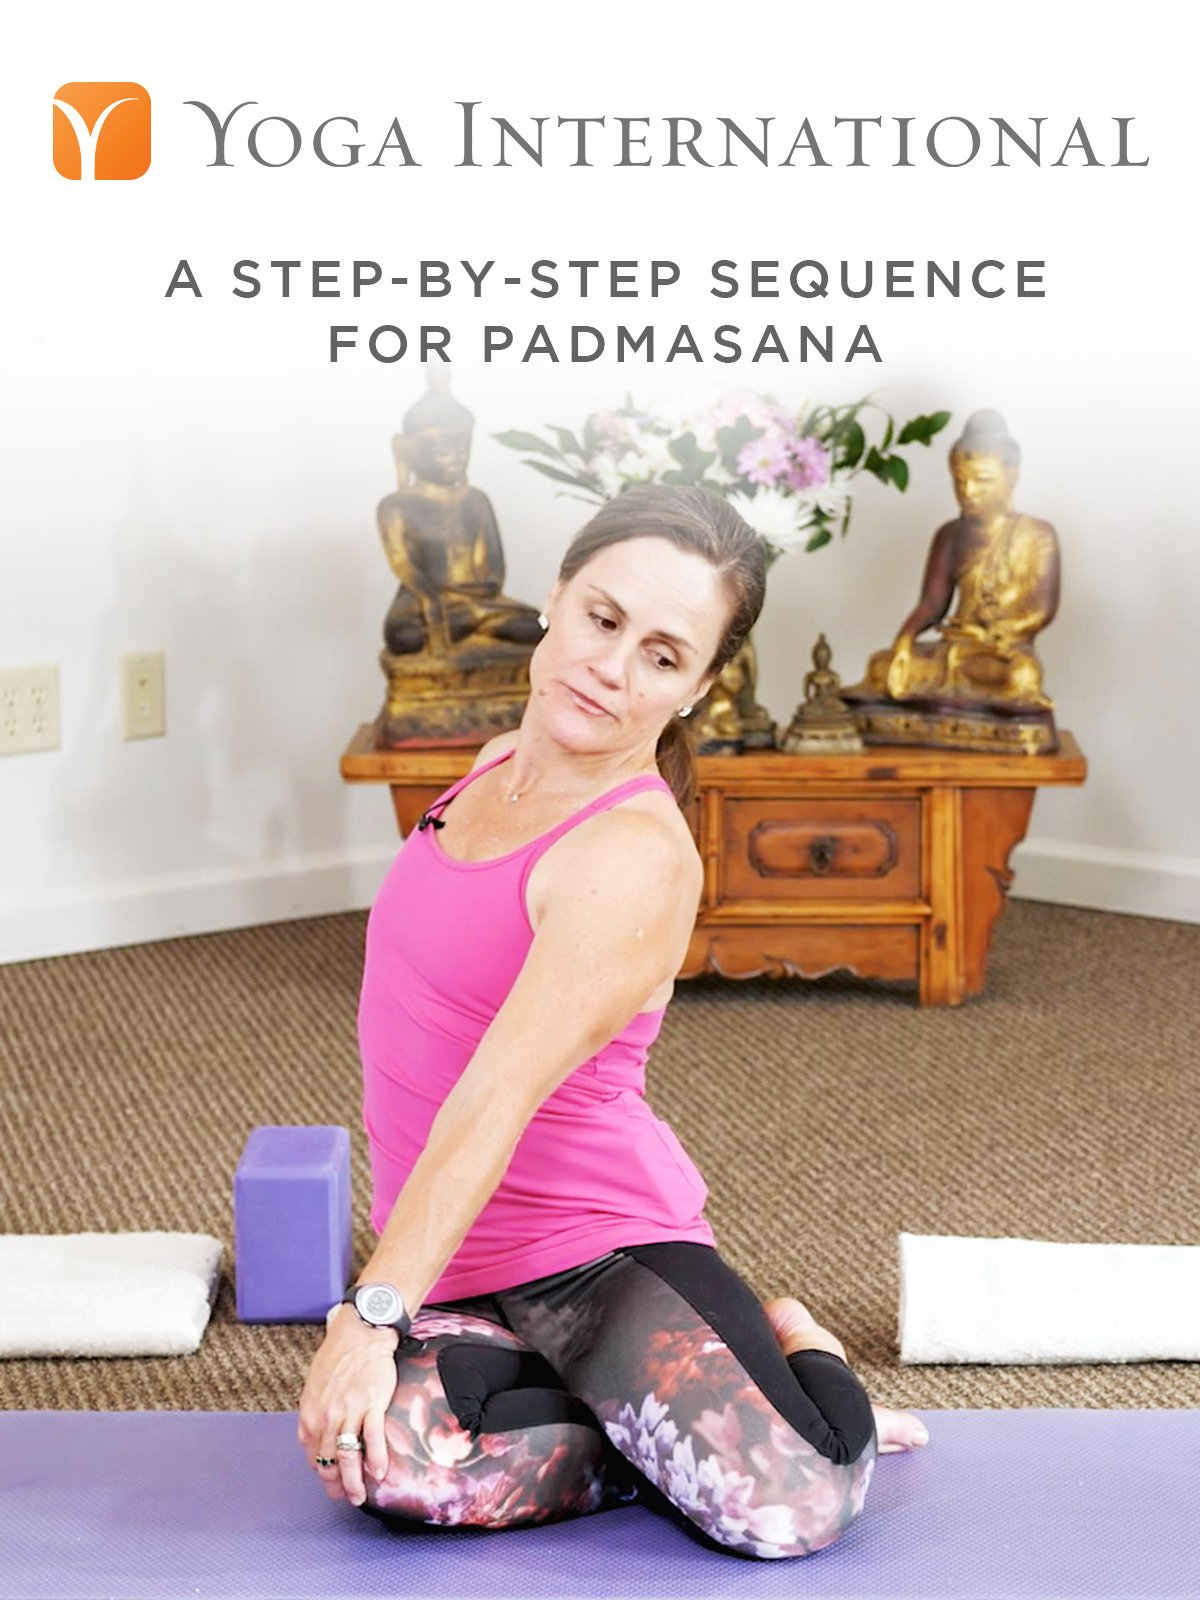 A Step-By-Step Sequence for Padmasana